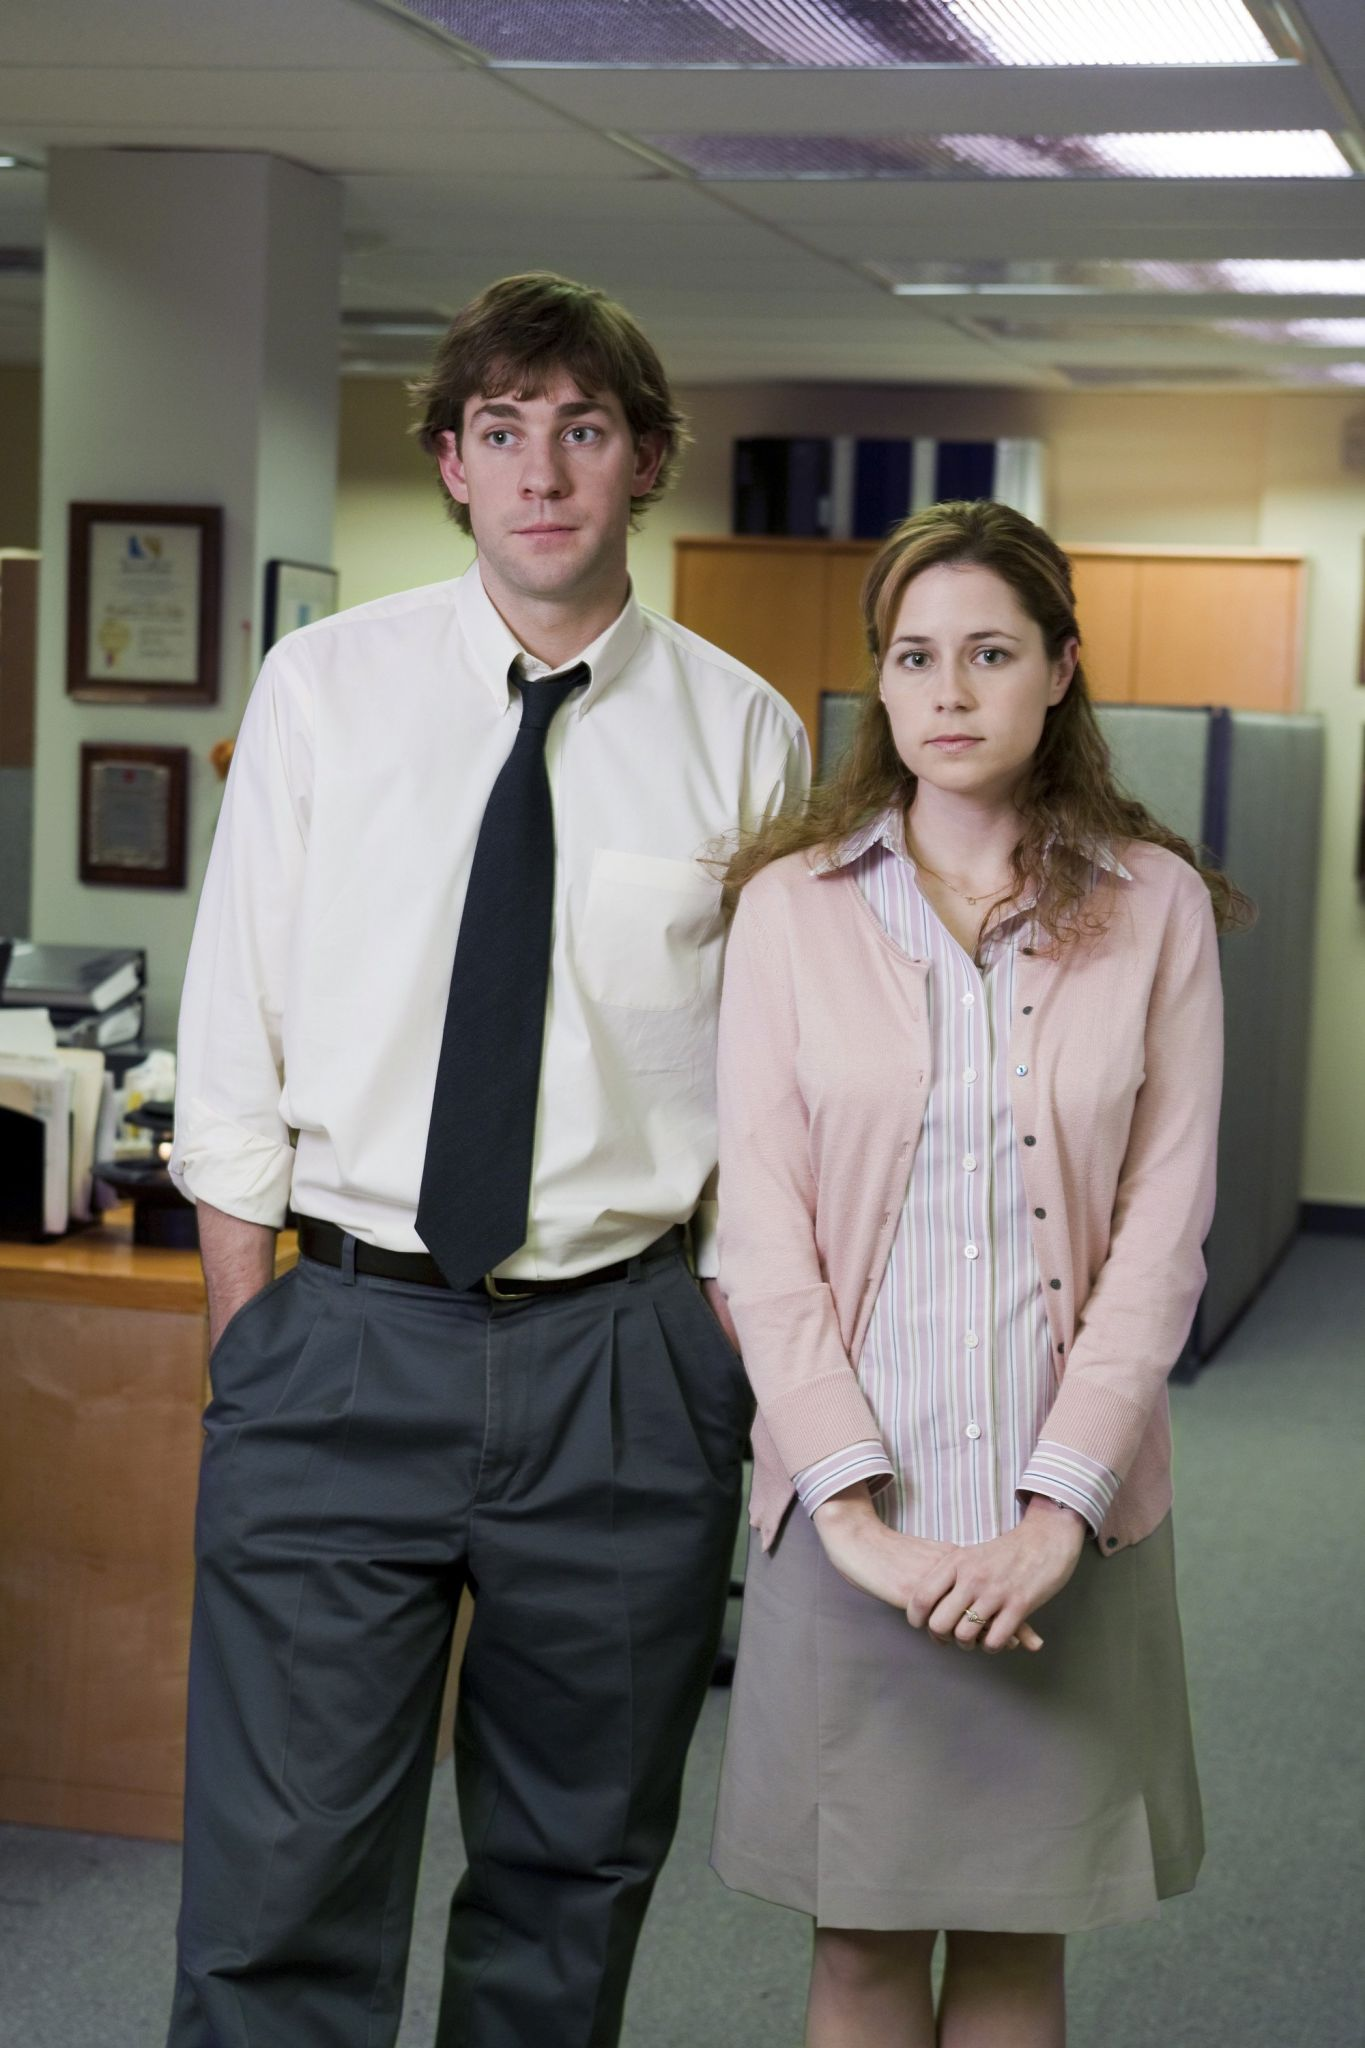 'The Office' bar crawl is back in San Antonio – and we have costume ideas - mySanAntonio.com